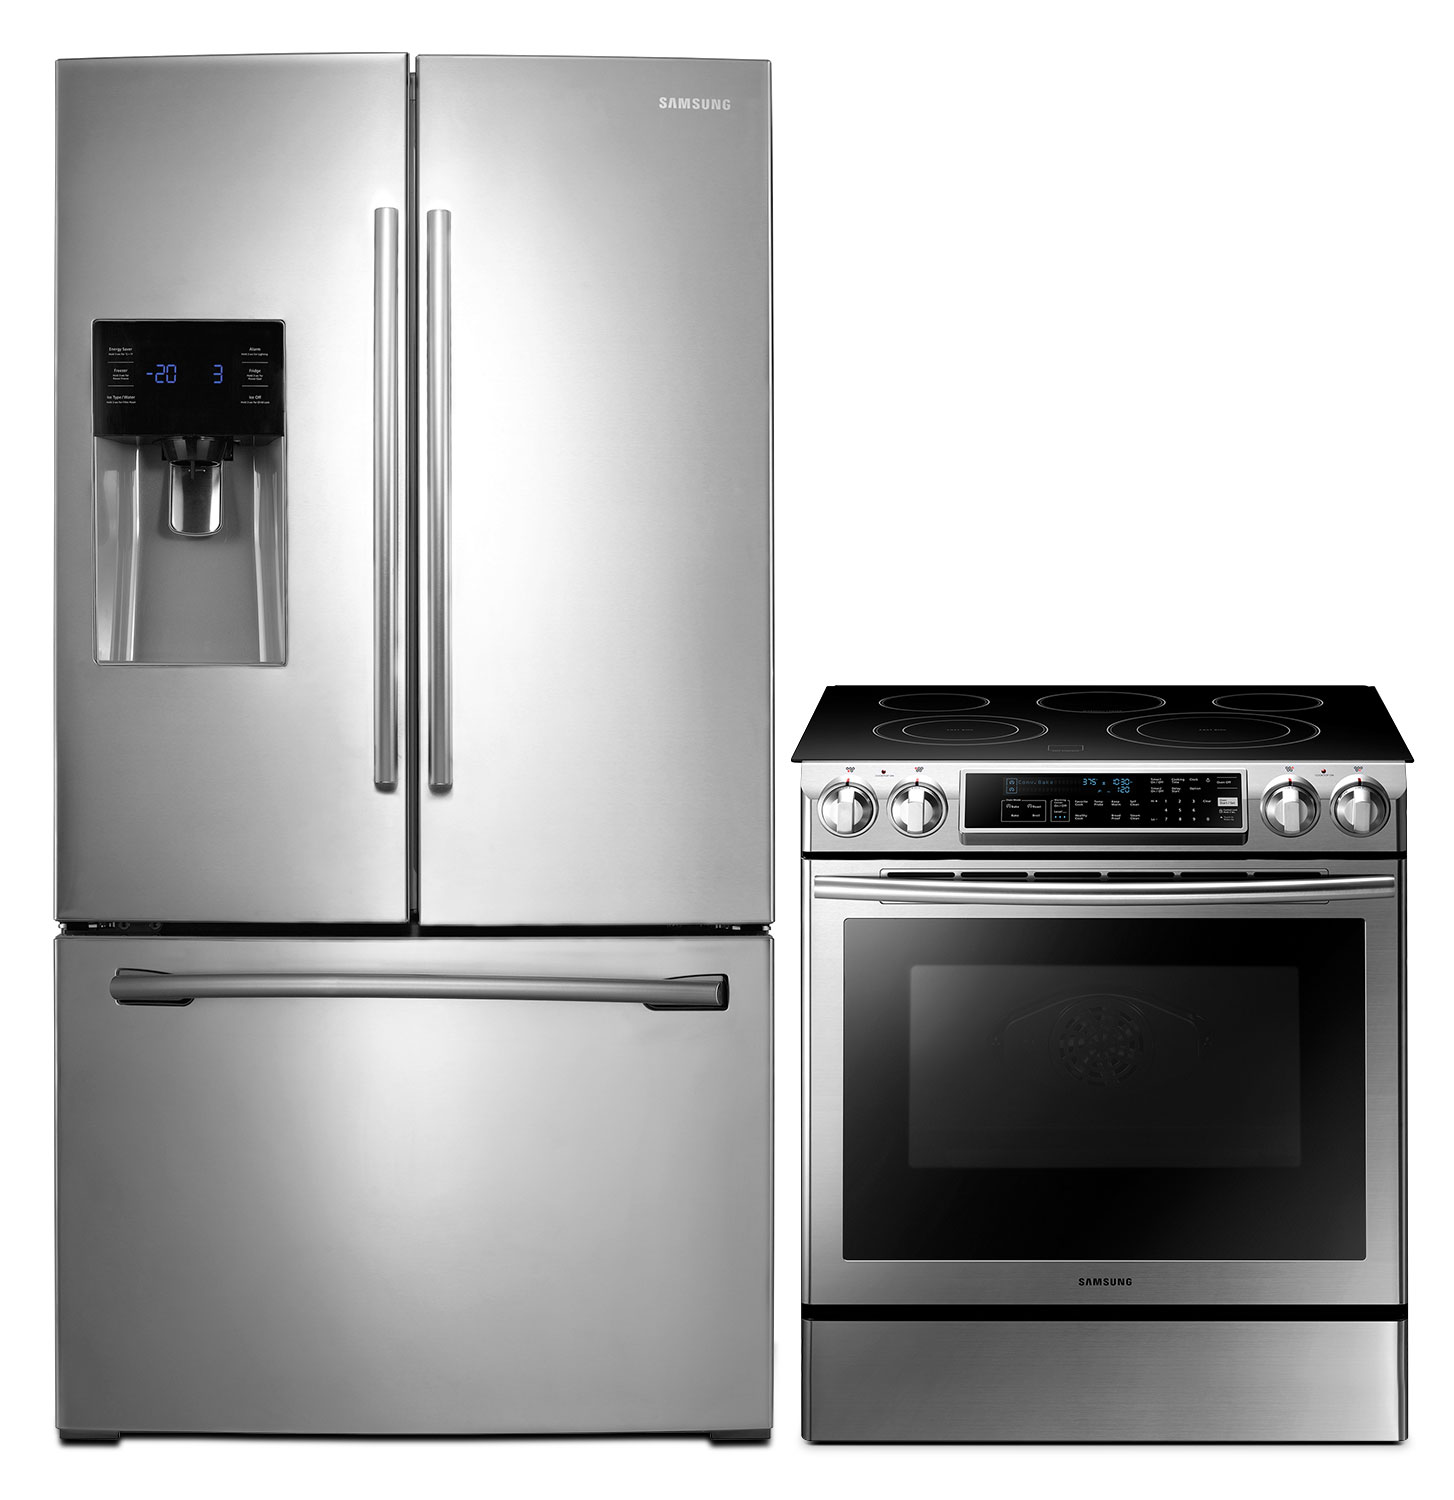 Refrigerators and Freezers - Samsung 26 Cu. Ft. French-Door Refrigerator and 5.8 Cu. Ft. Electric Range – Stainless Steel